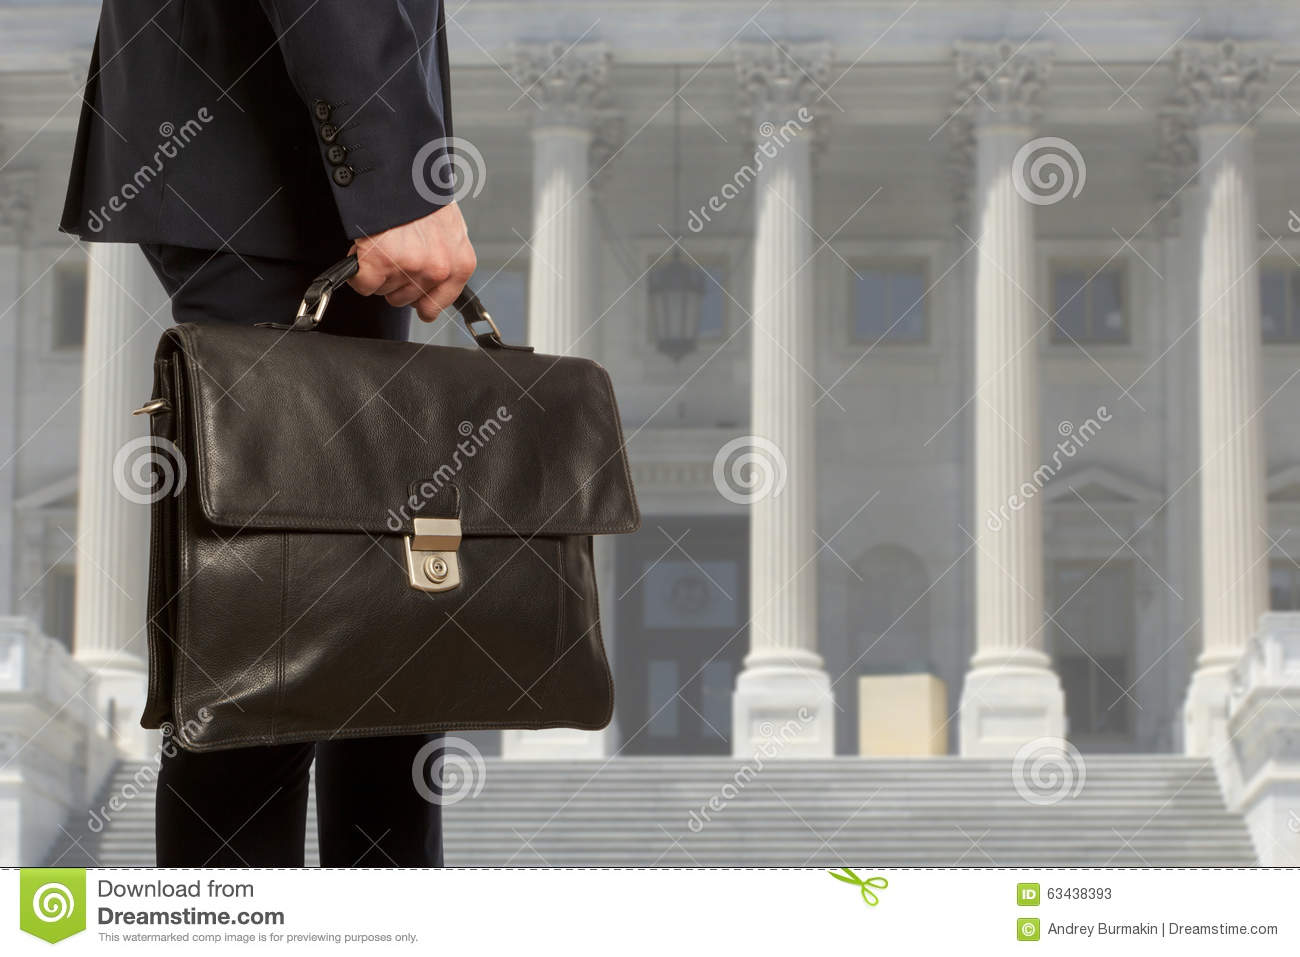 The lawyer with a briefcase